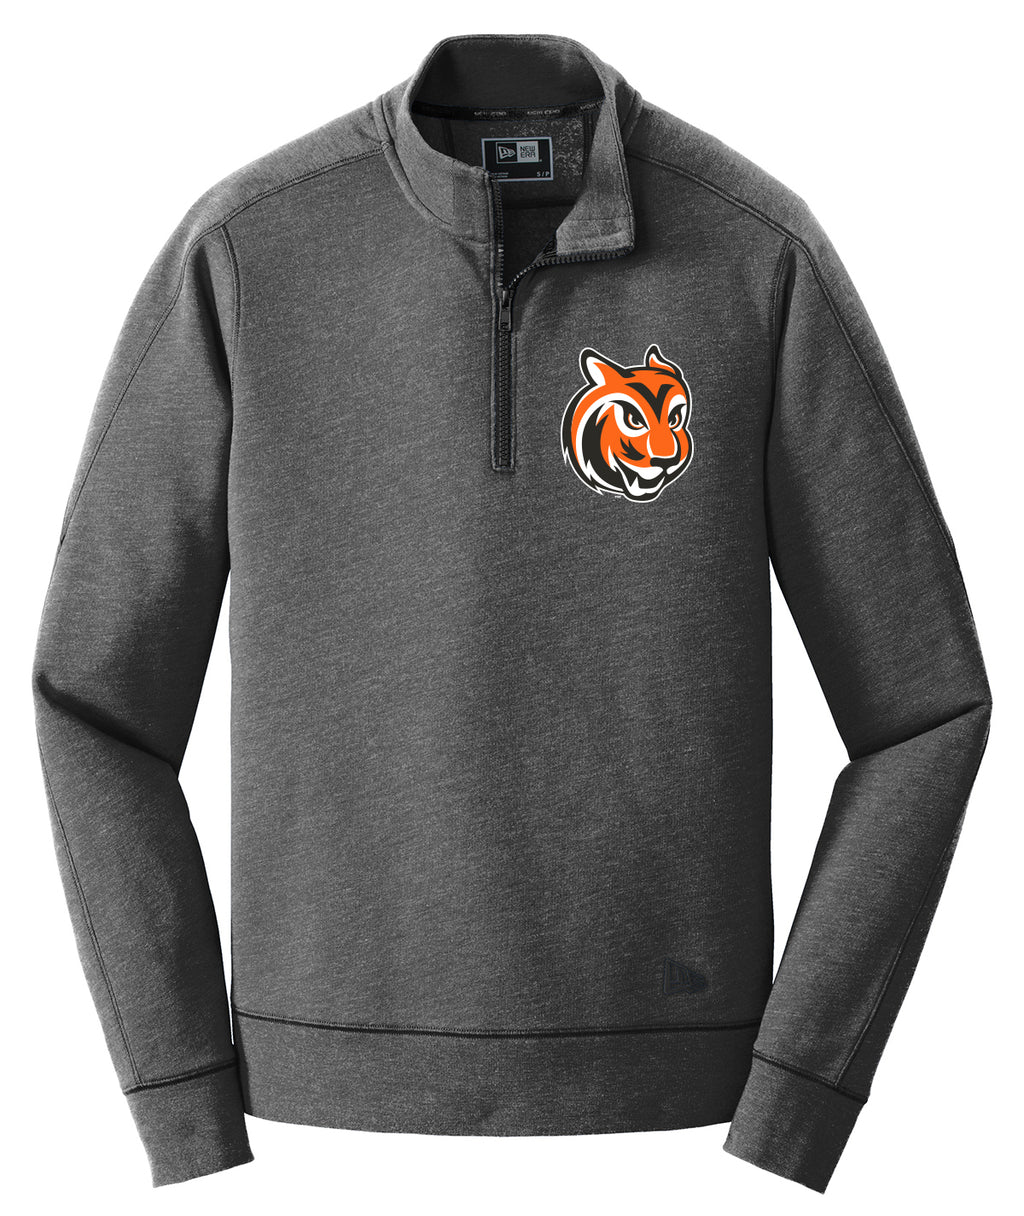 Tiger Head New Era Fleece Pullover